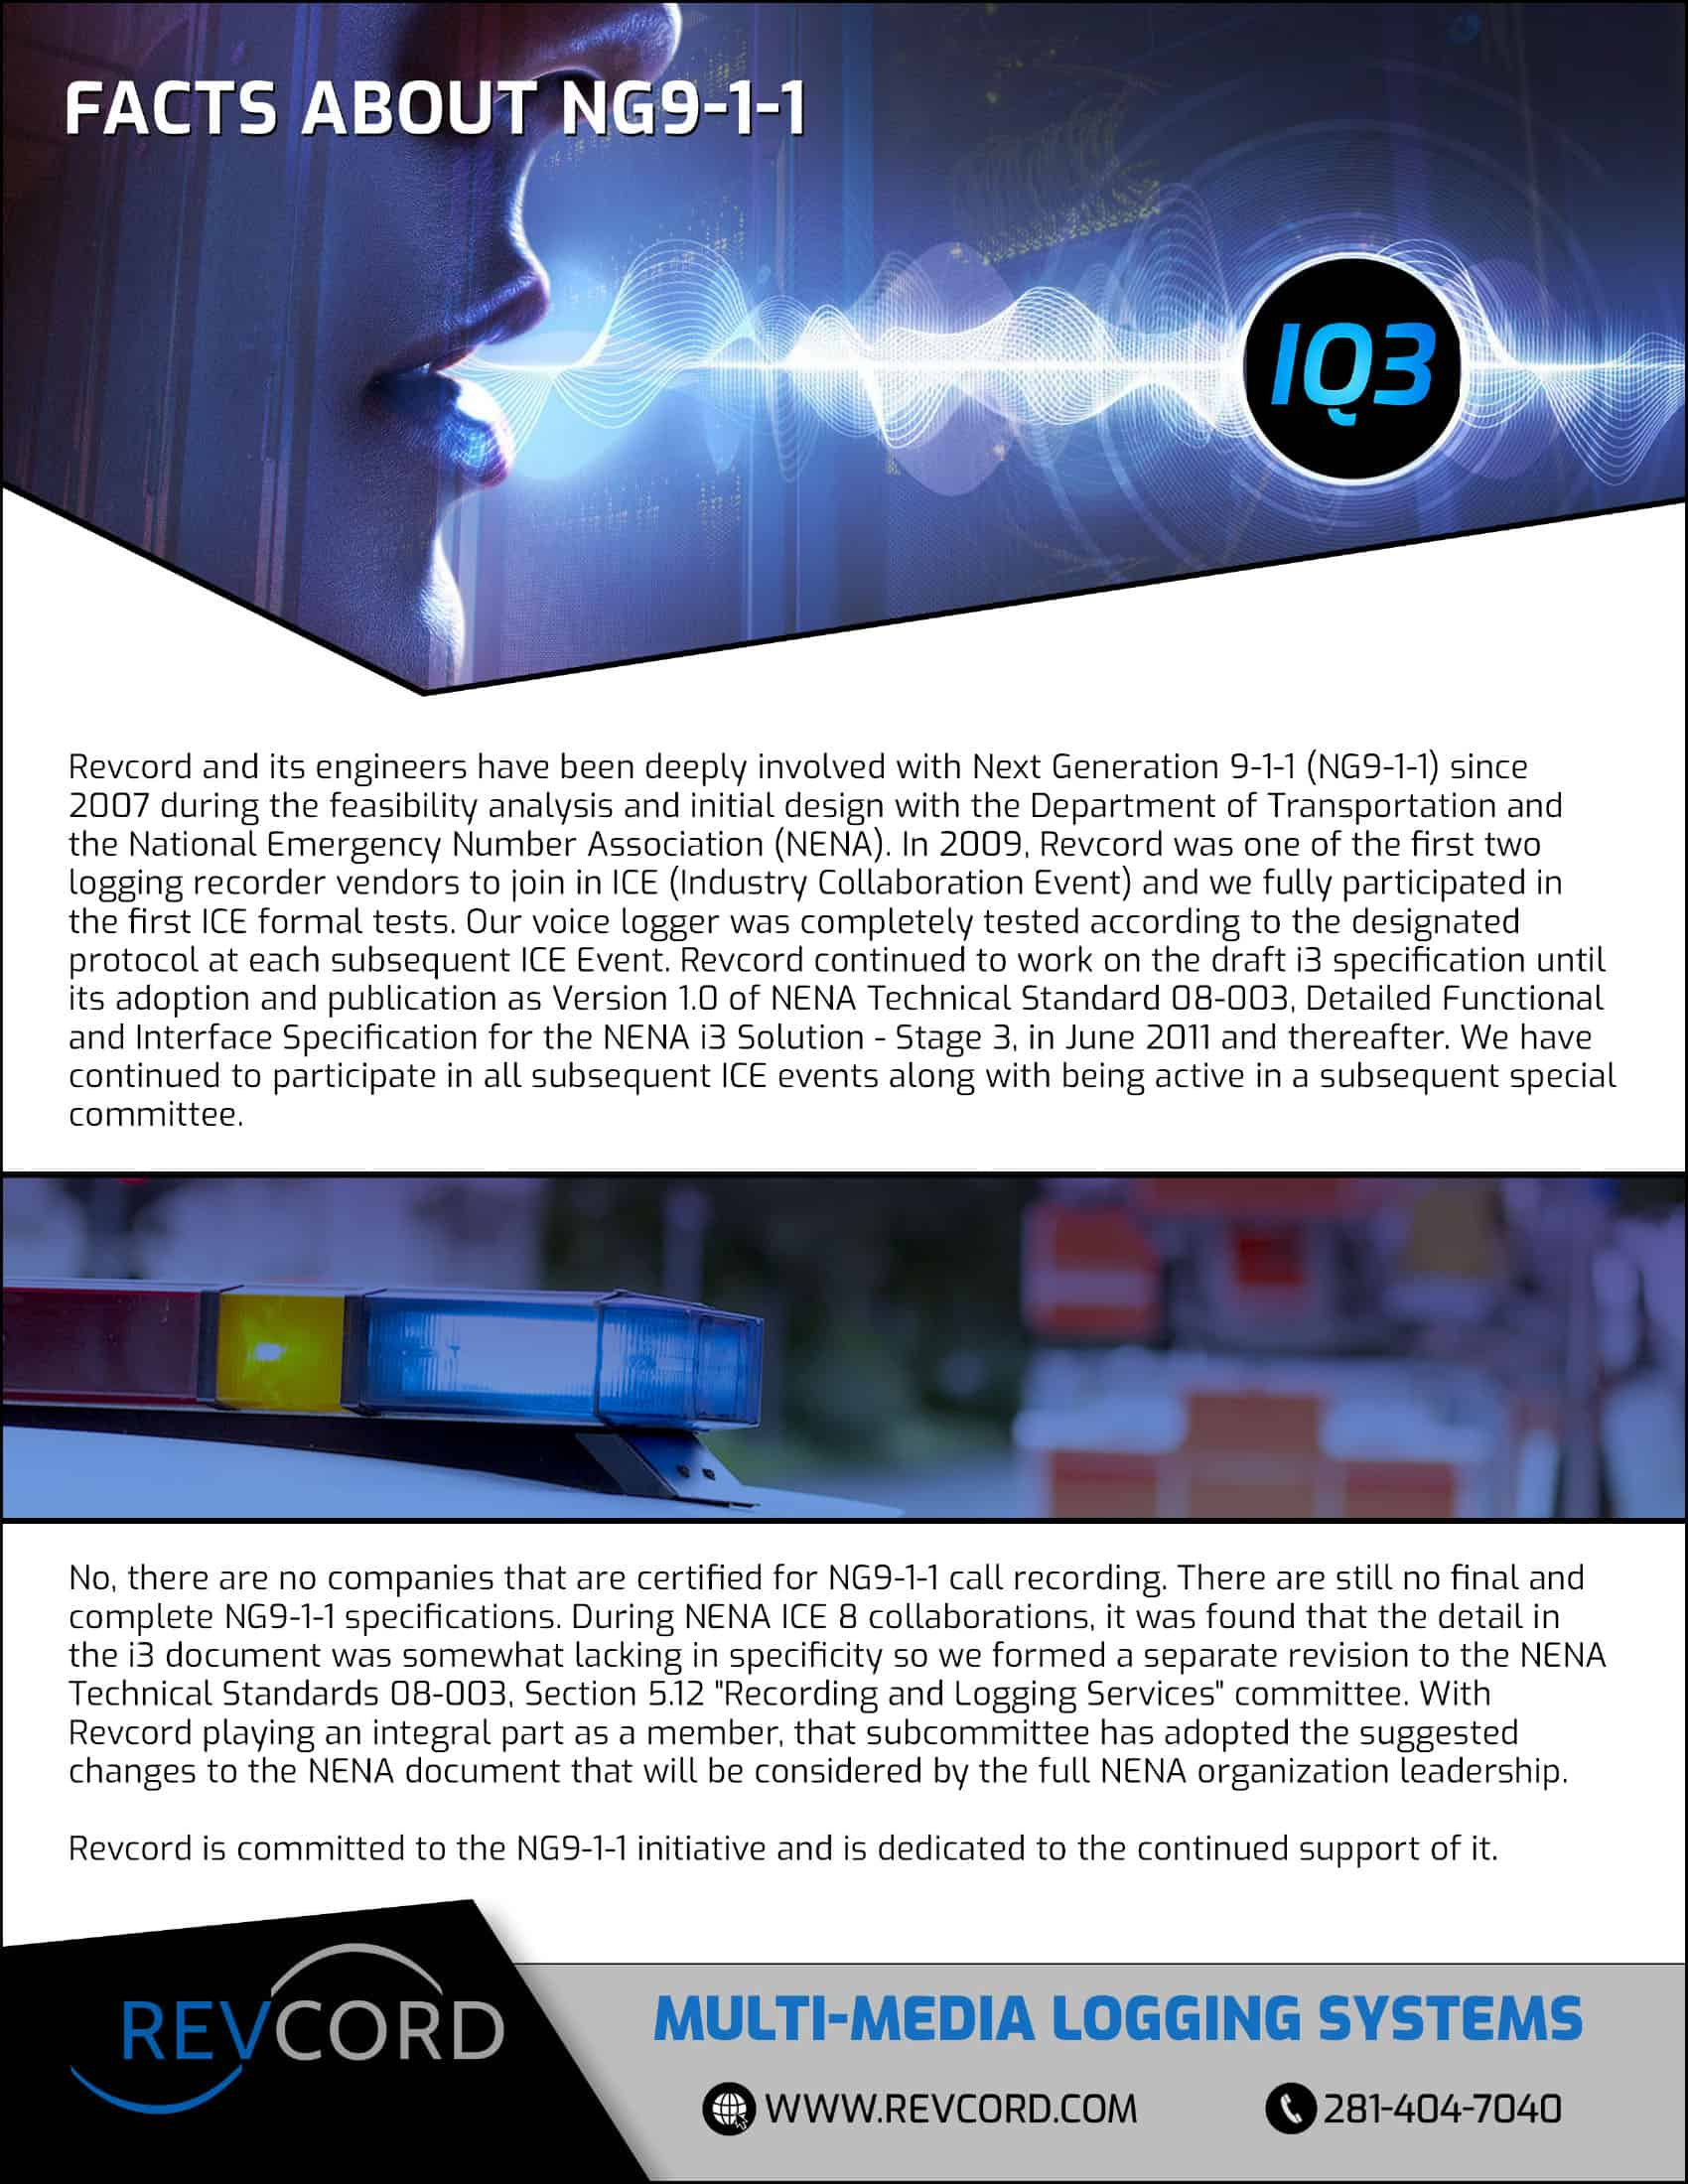 Facts About NG9-1-1